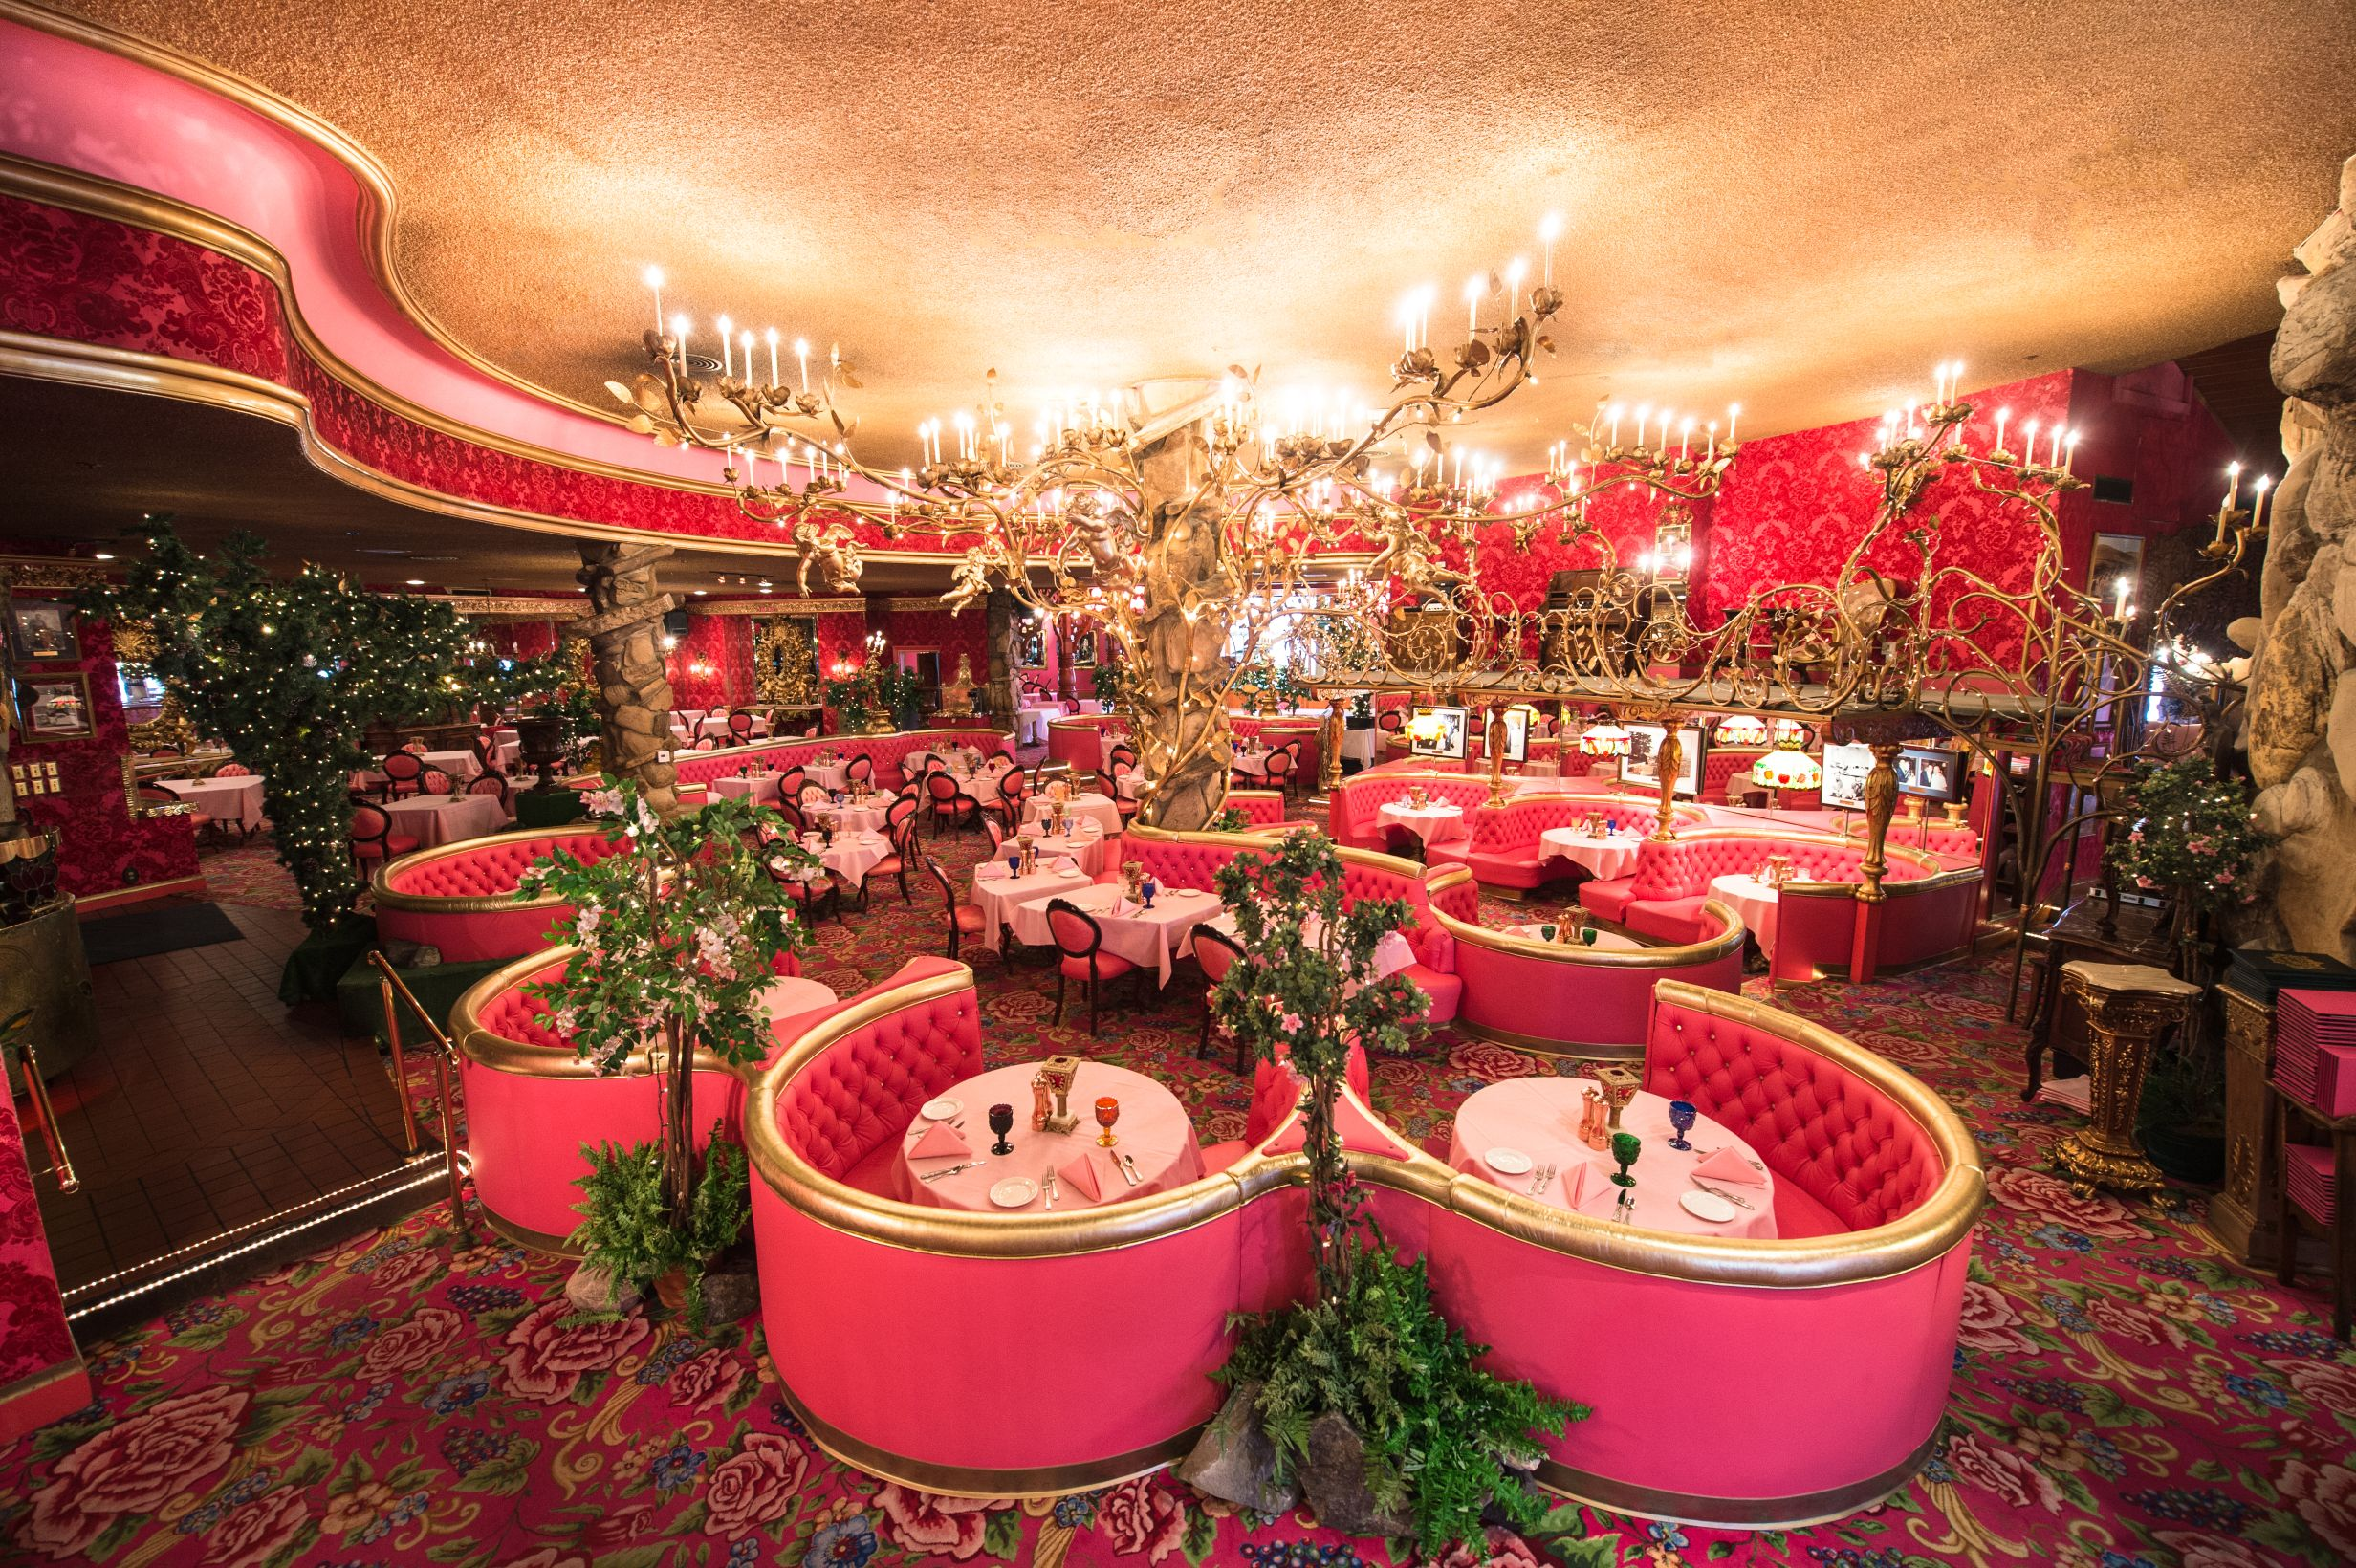 The Madonna Inn A Mythical Muse Of Photography